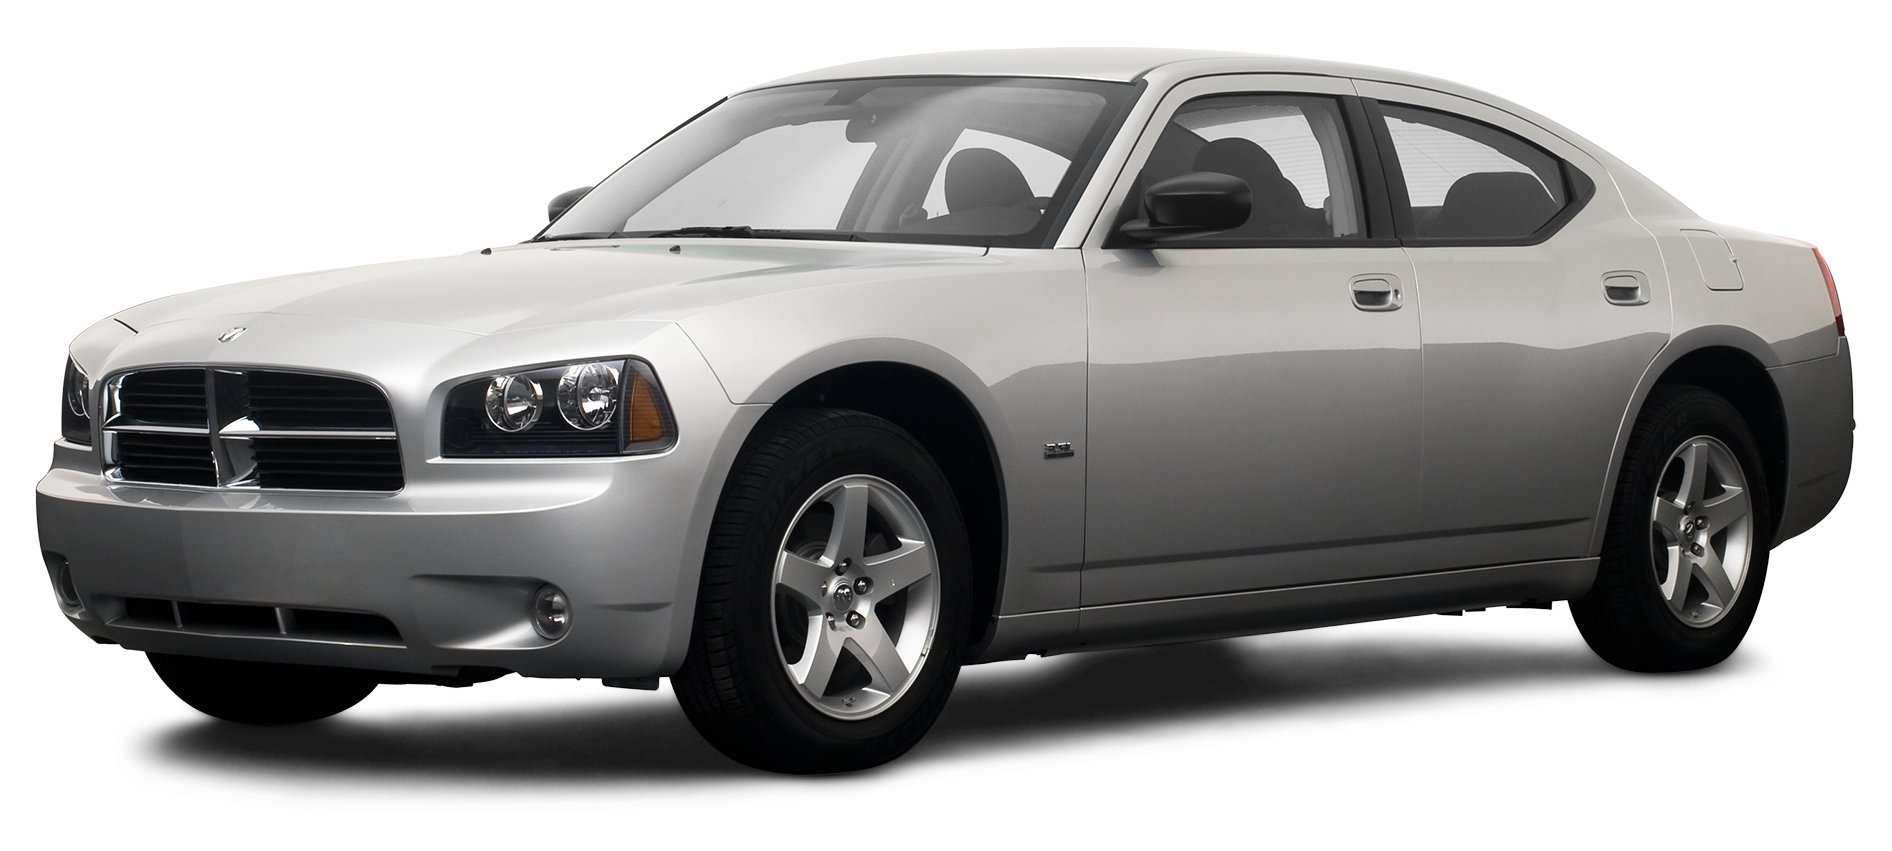 2009 Dodge Charger R/T, 4-Door Sedan All Wheel Drive ...